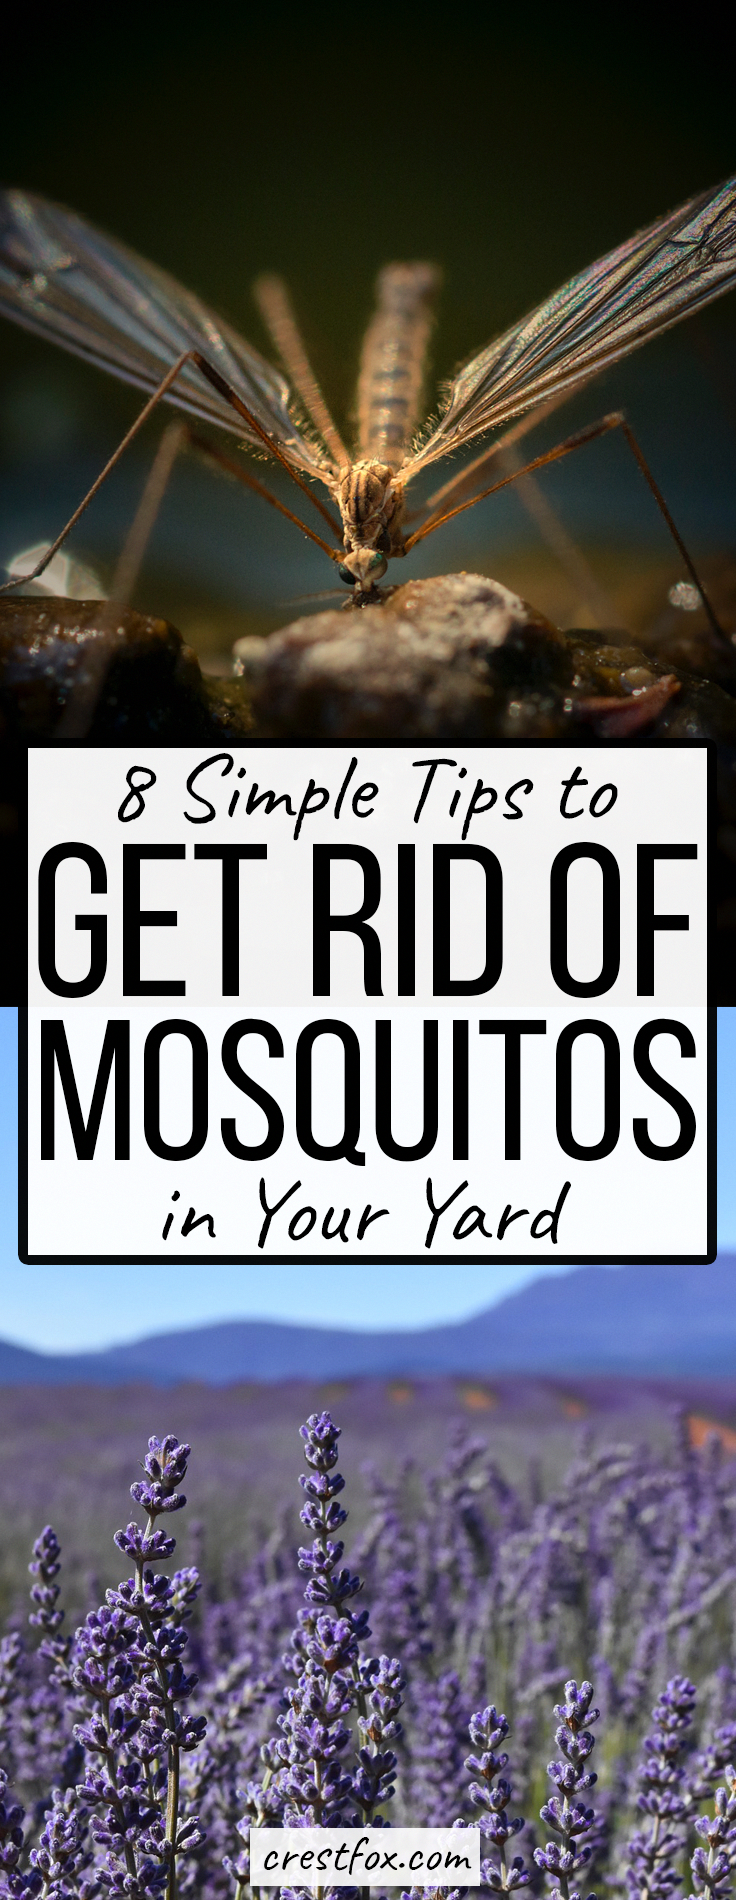 How to Get Rid of Mosquitoes in Your Yard - 8 Tips ...